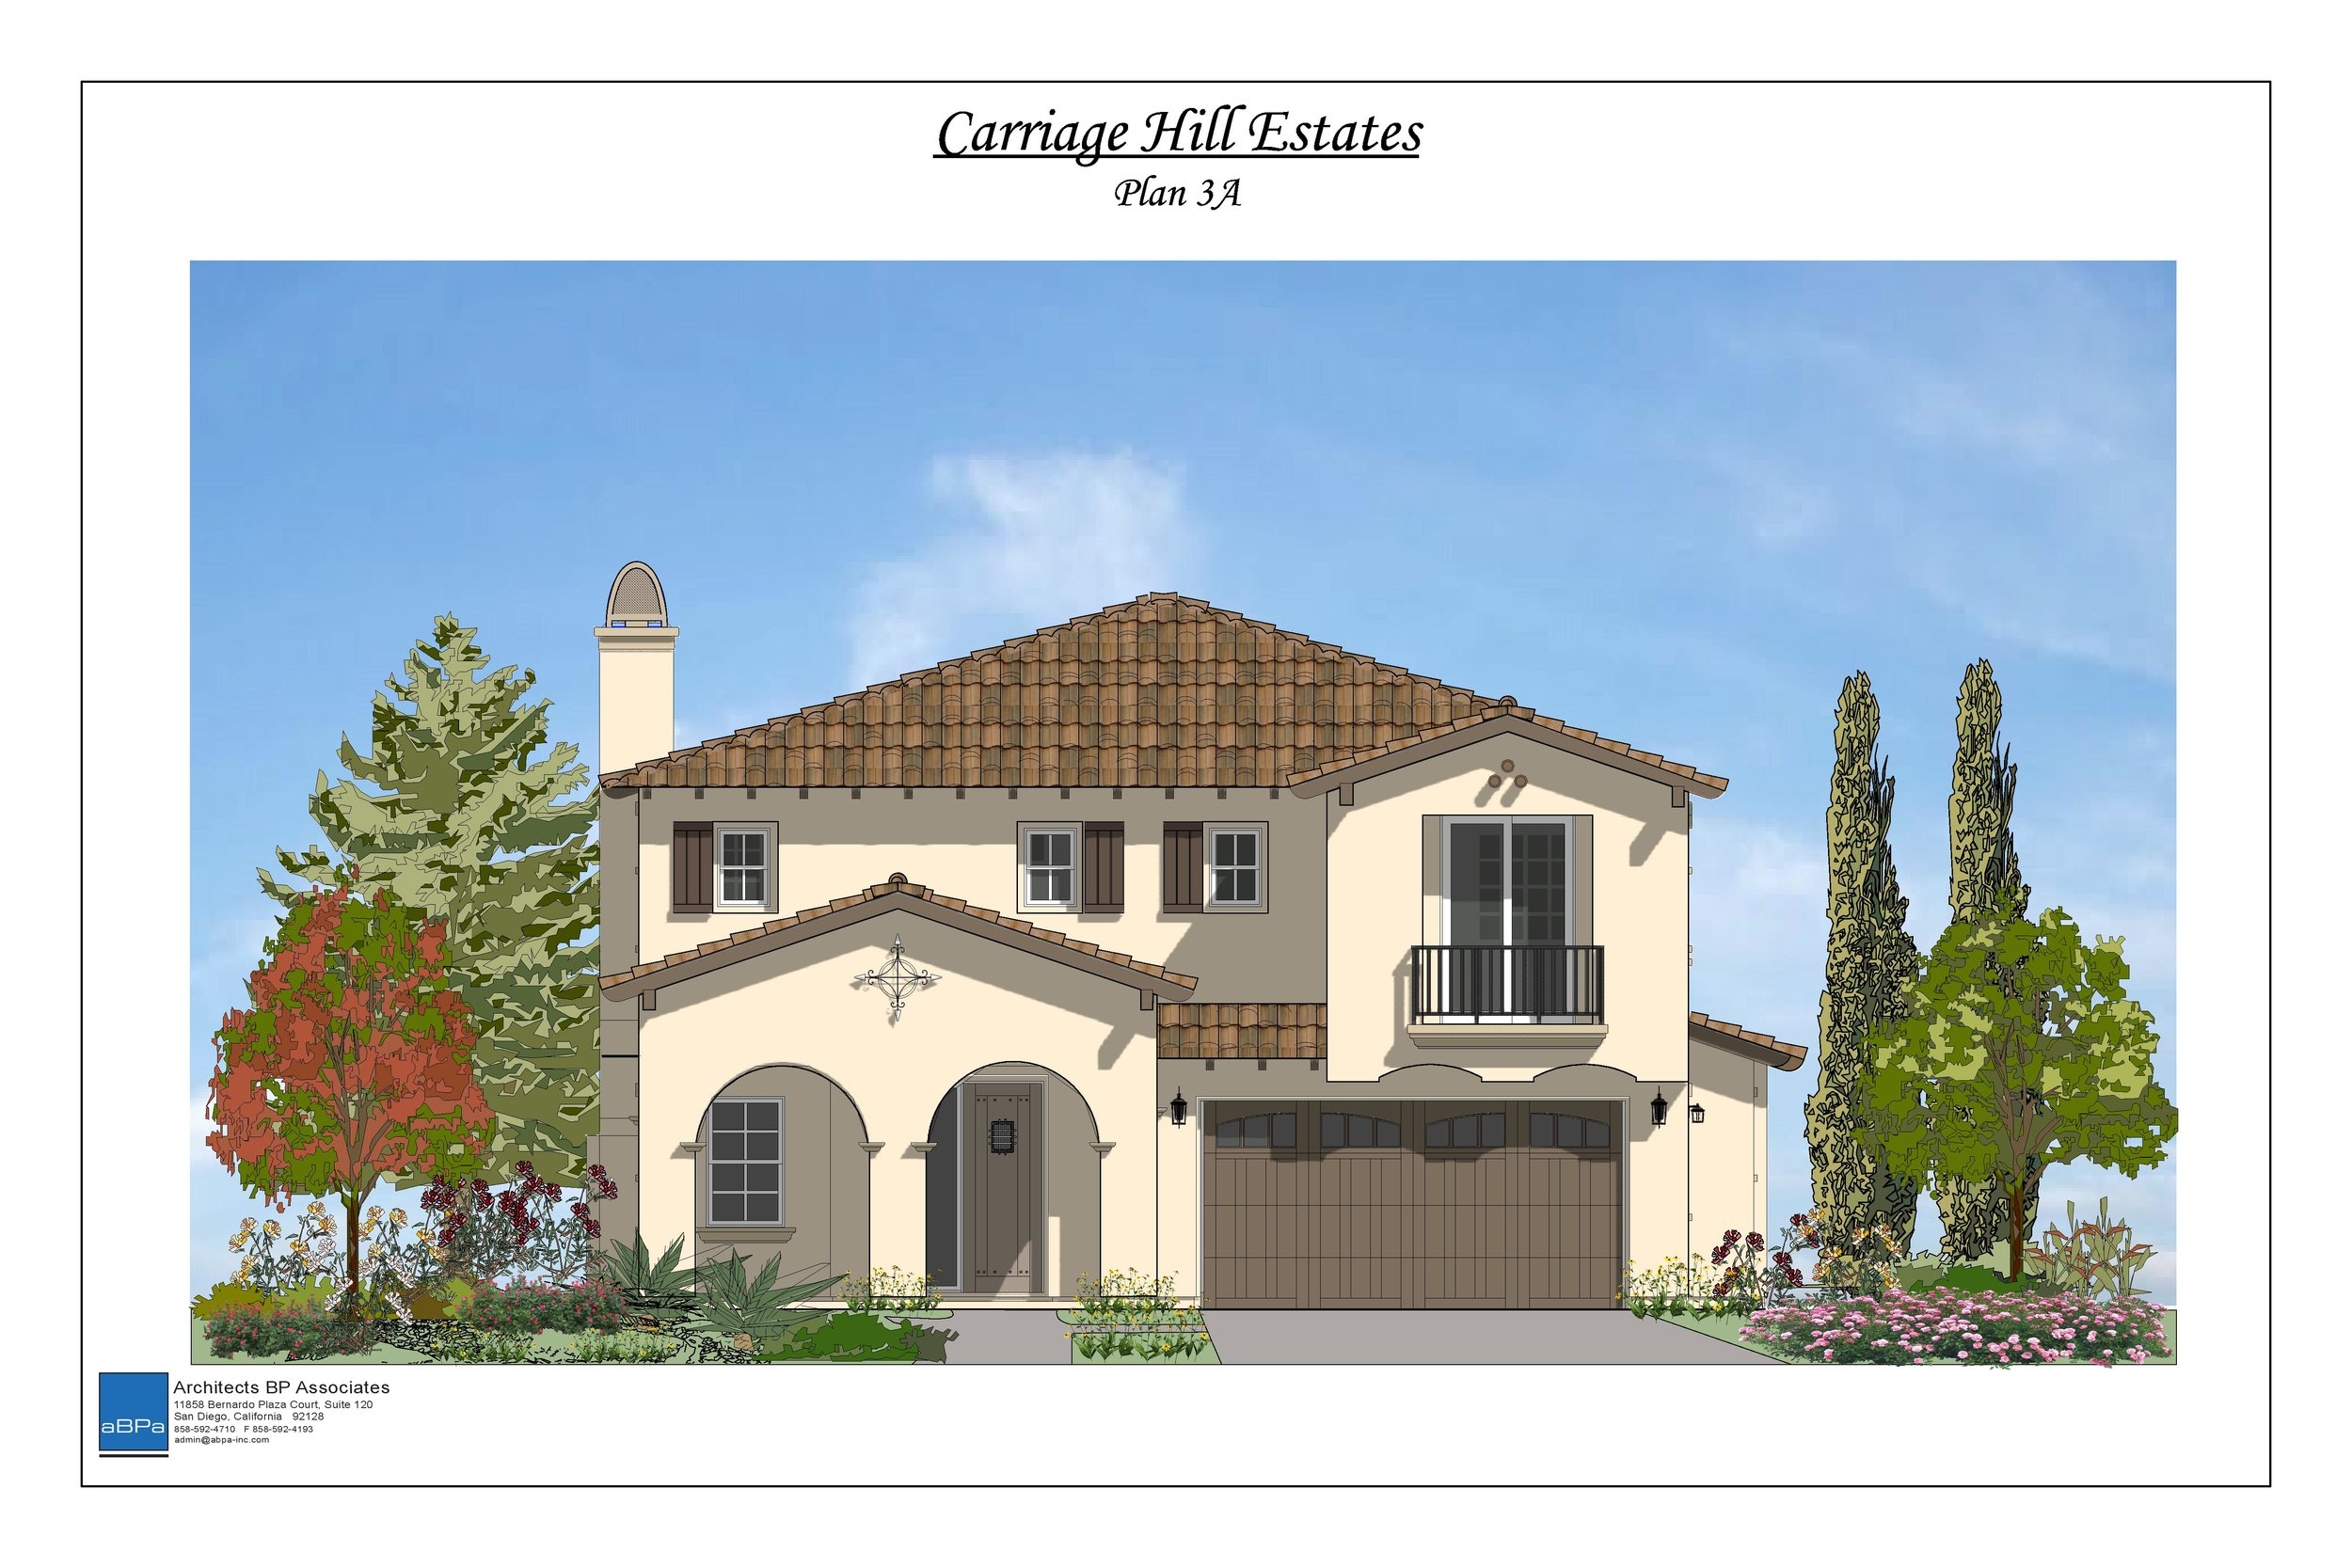 Carriage Hill - Plan 3 Color Elev(040219)-page-001.jpg